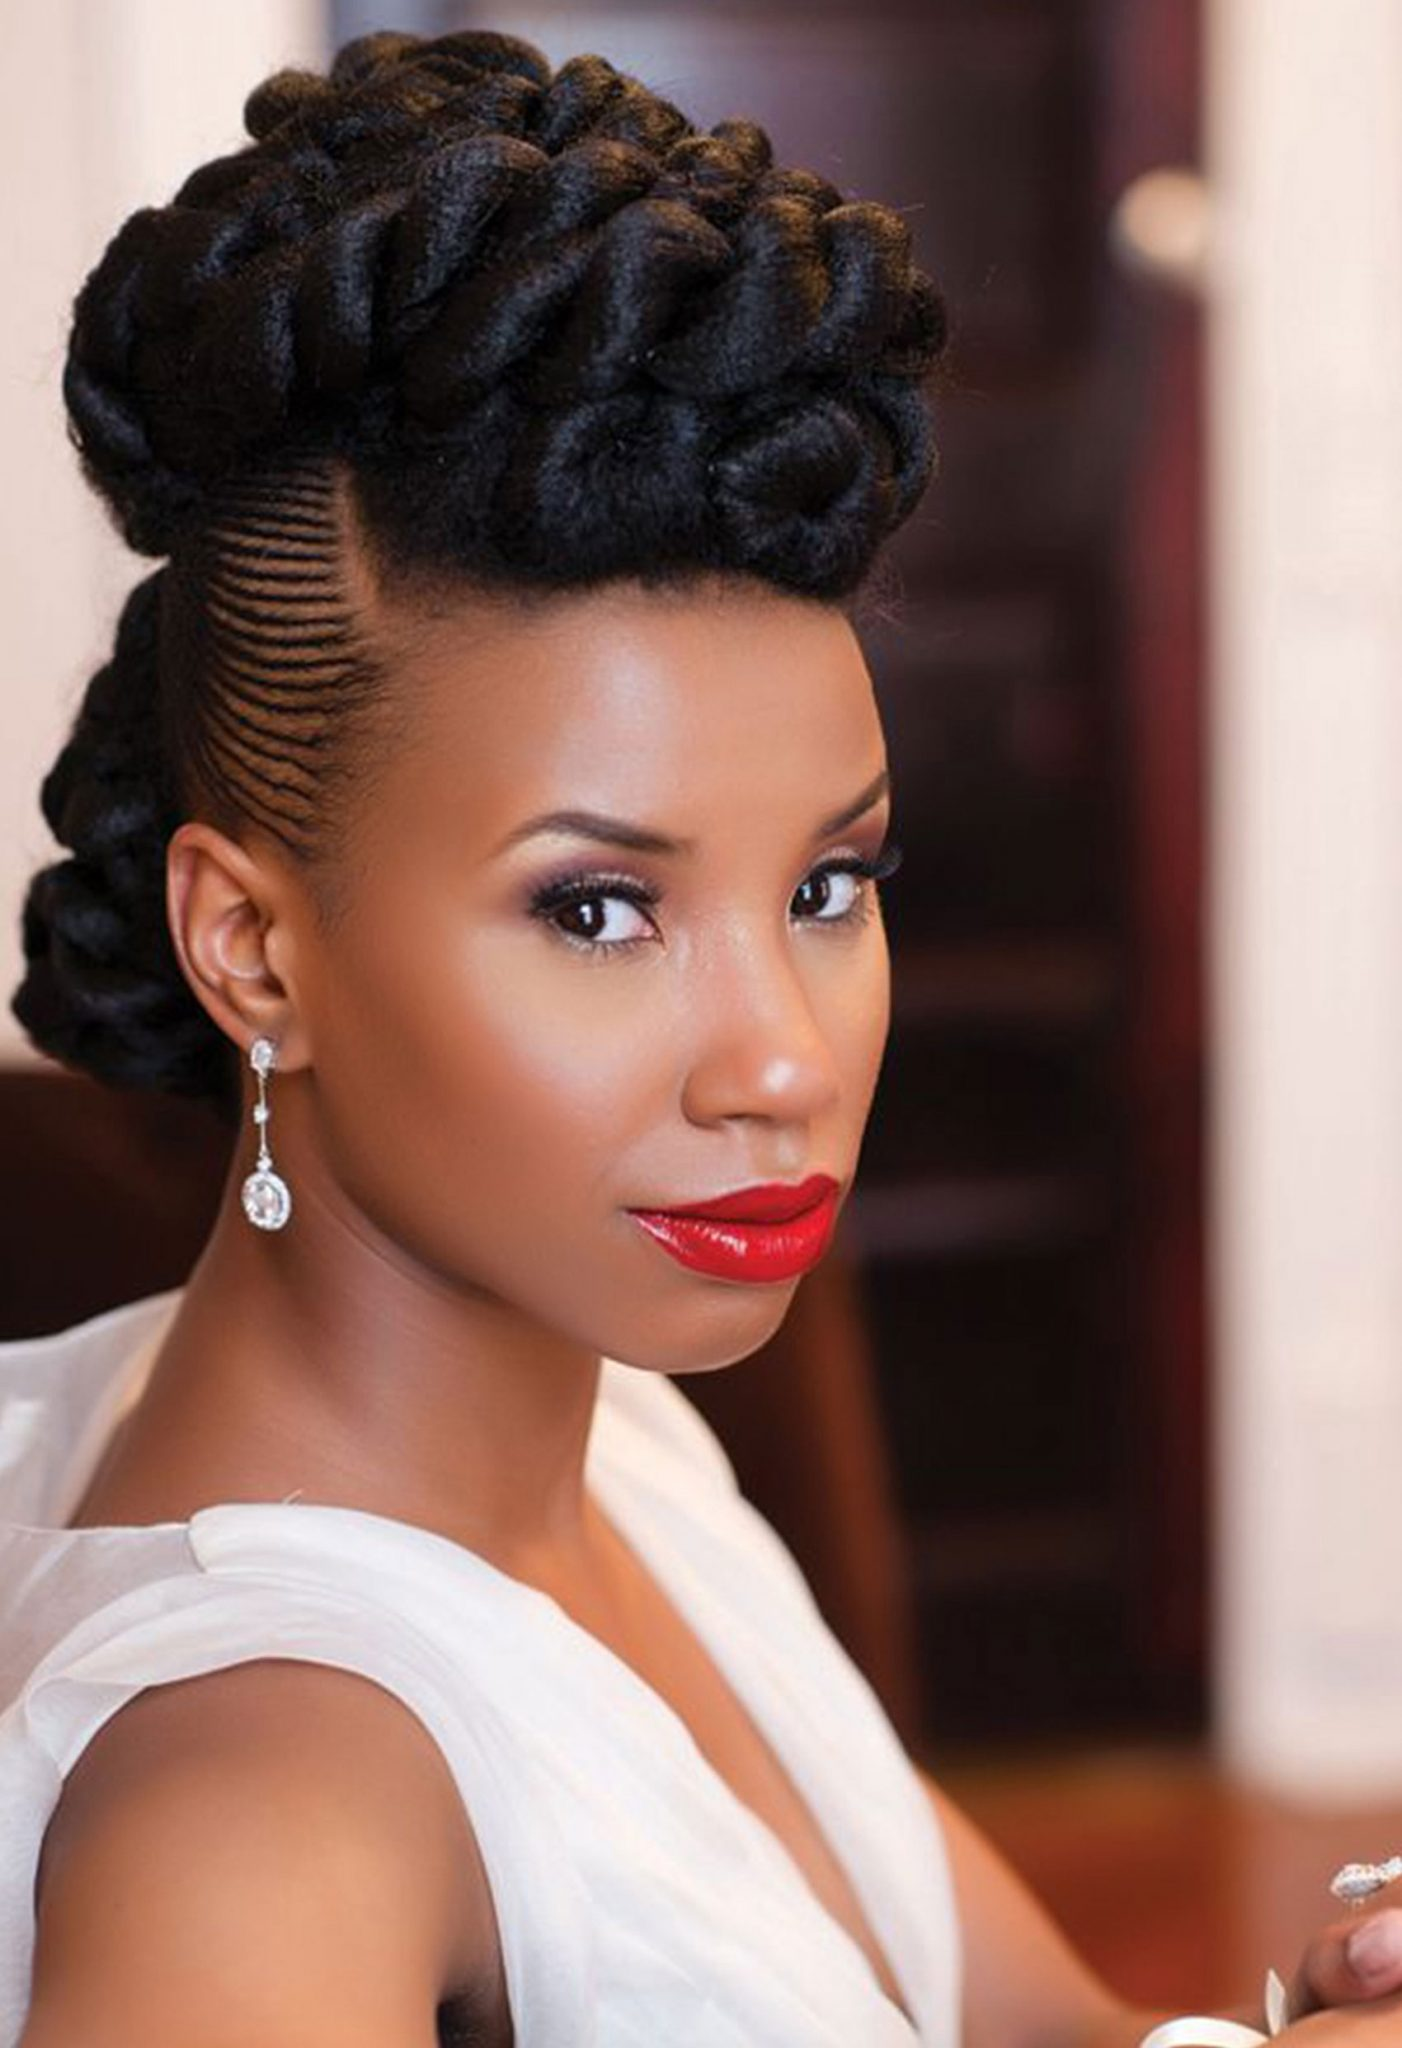 Updo-Mohawk-Hairstyle Most Beautiful Natural Hairstyles for Wedding